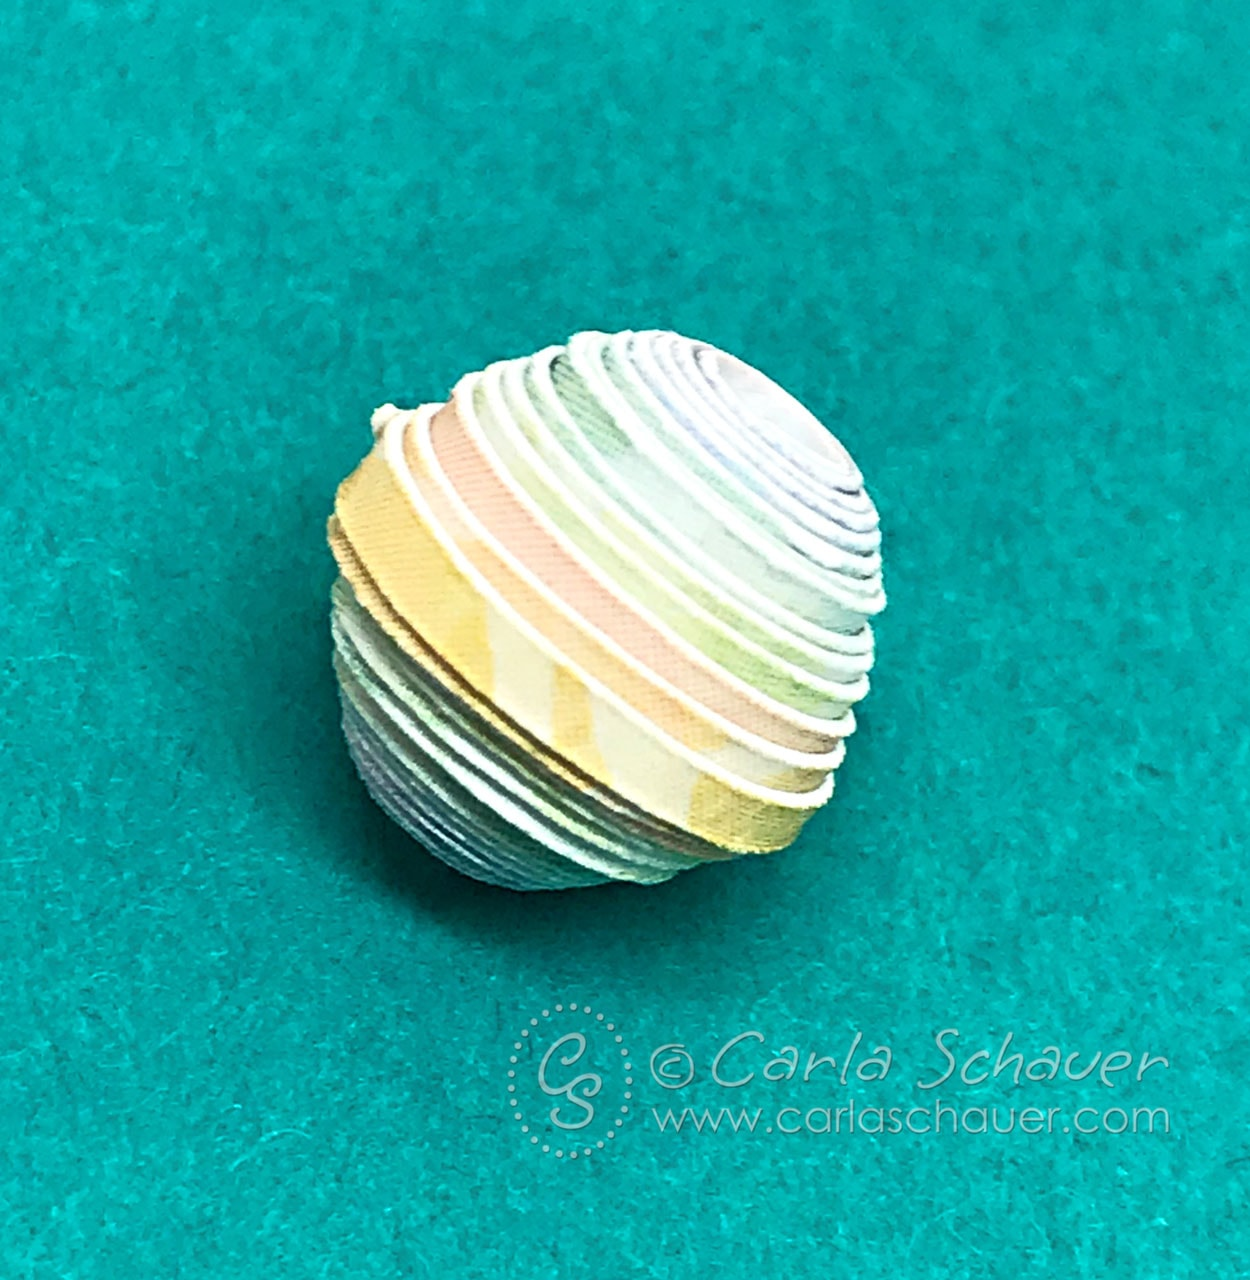 Rainbow rolled paper bead on turquoise backround.